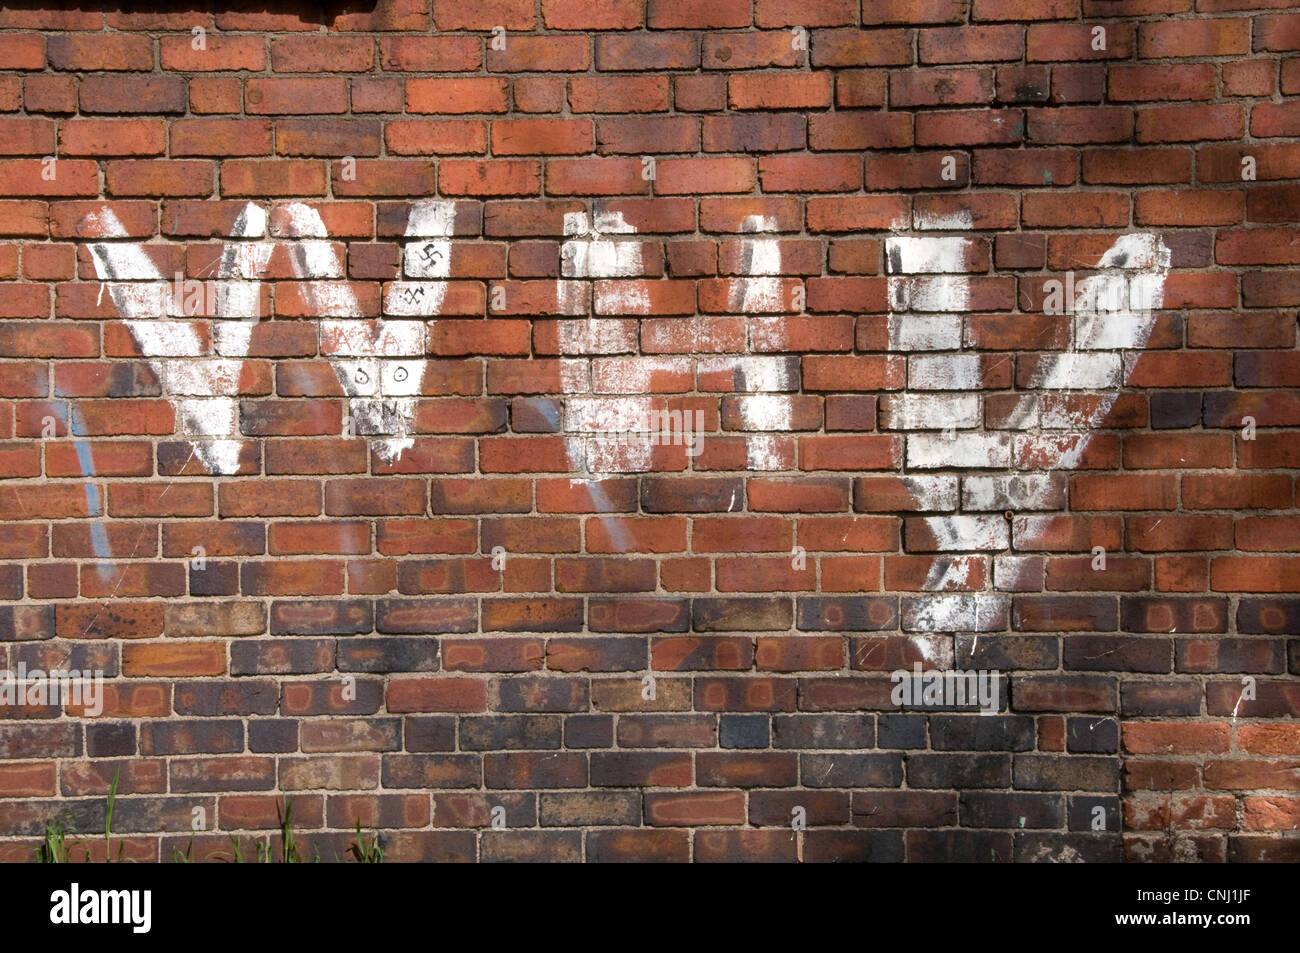 brick wall graffiti graffiti on a brick wall stock photo 47724951 alamy 180